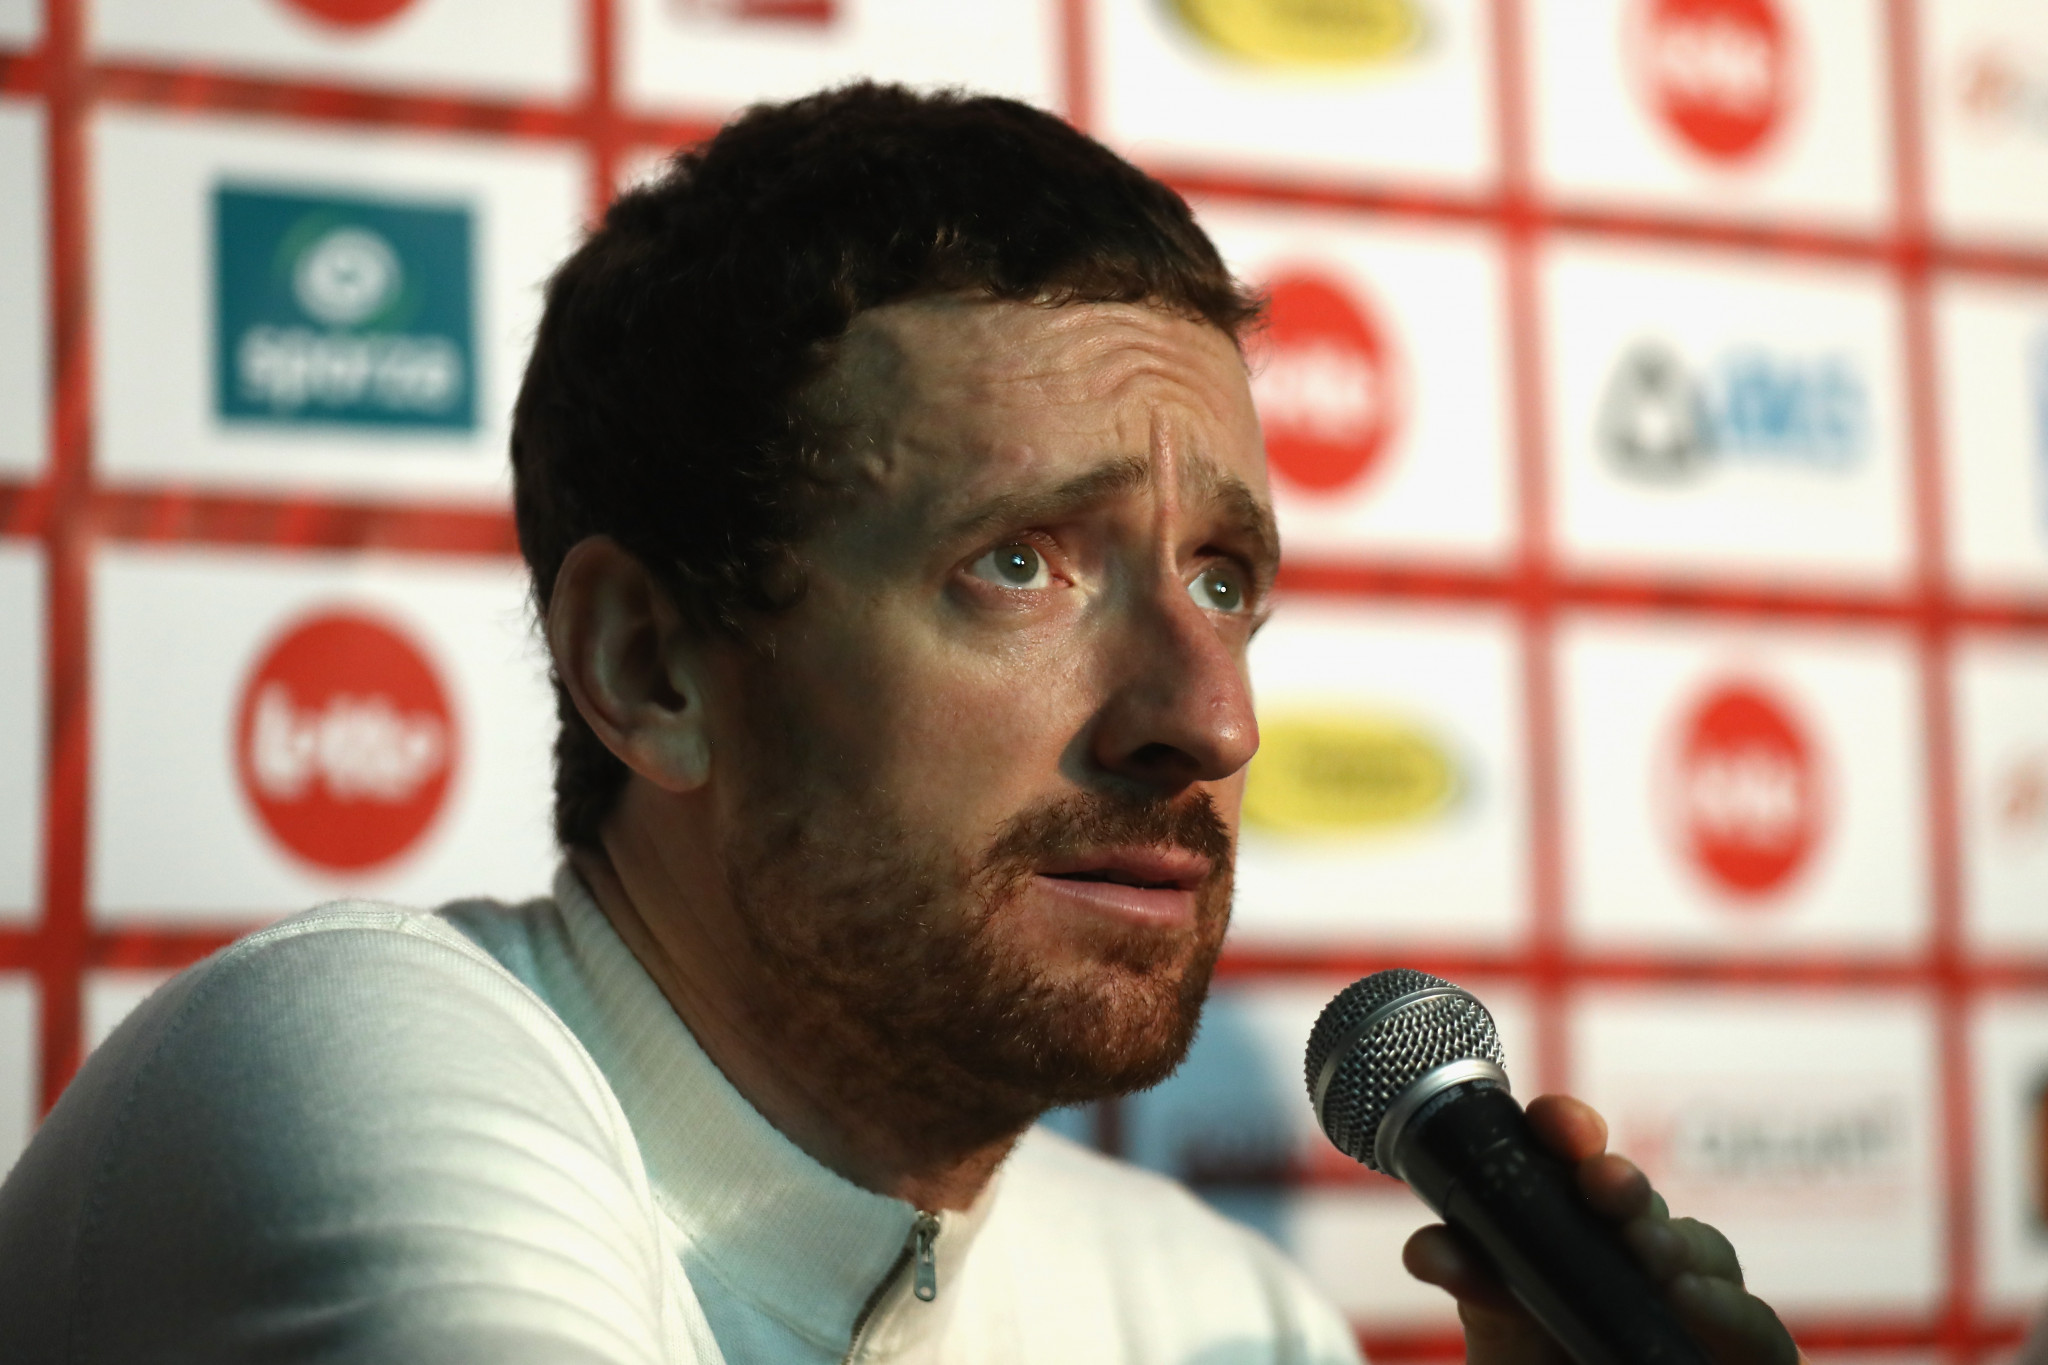 Richard Freeman has never been able to prove the contents of a mystery package sent to Sir Bradley Wiggins during a race in 2011 ©Getty Images